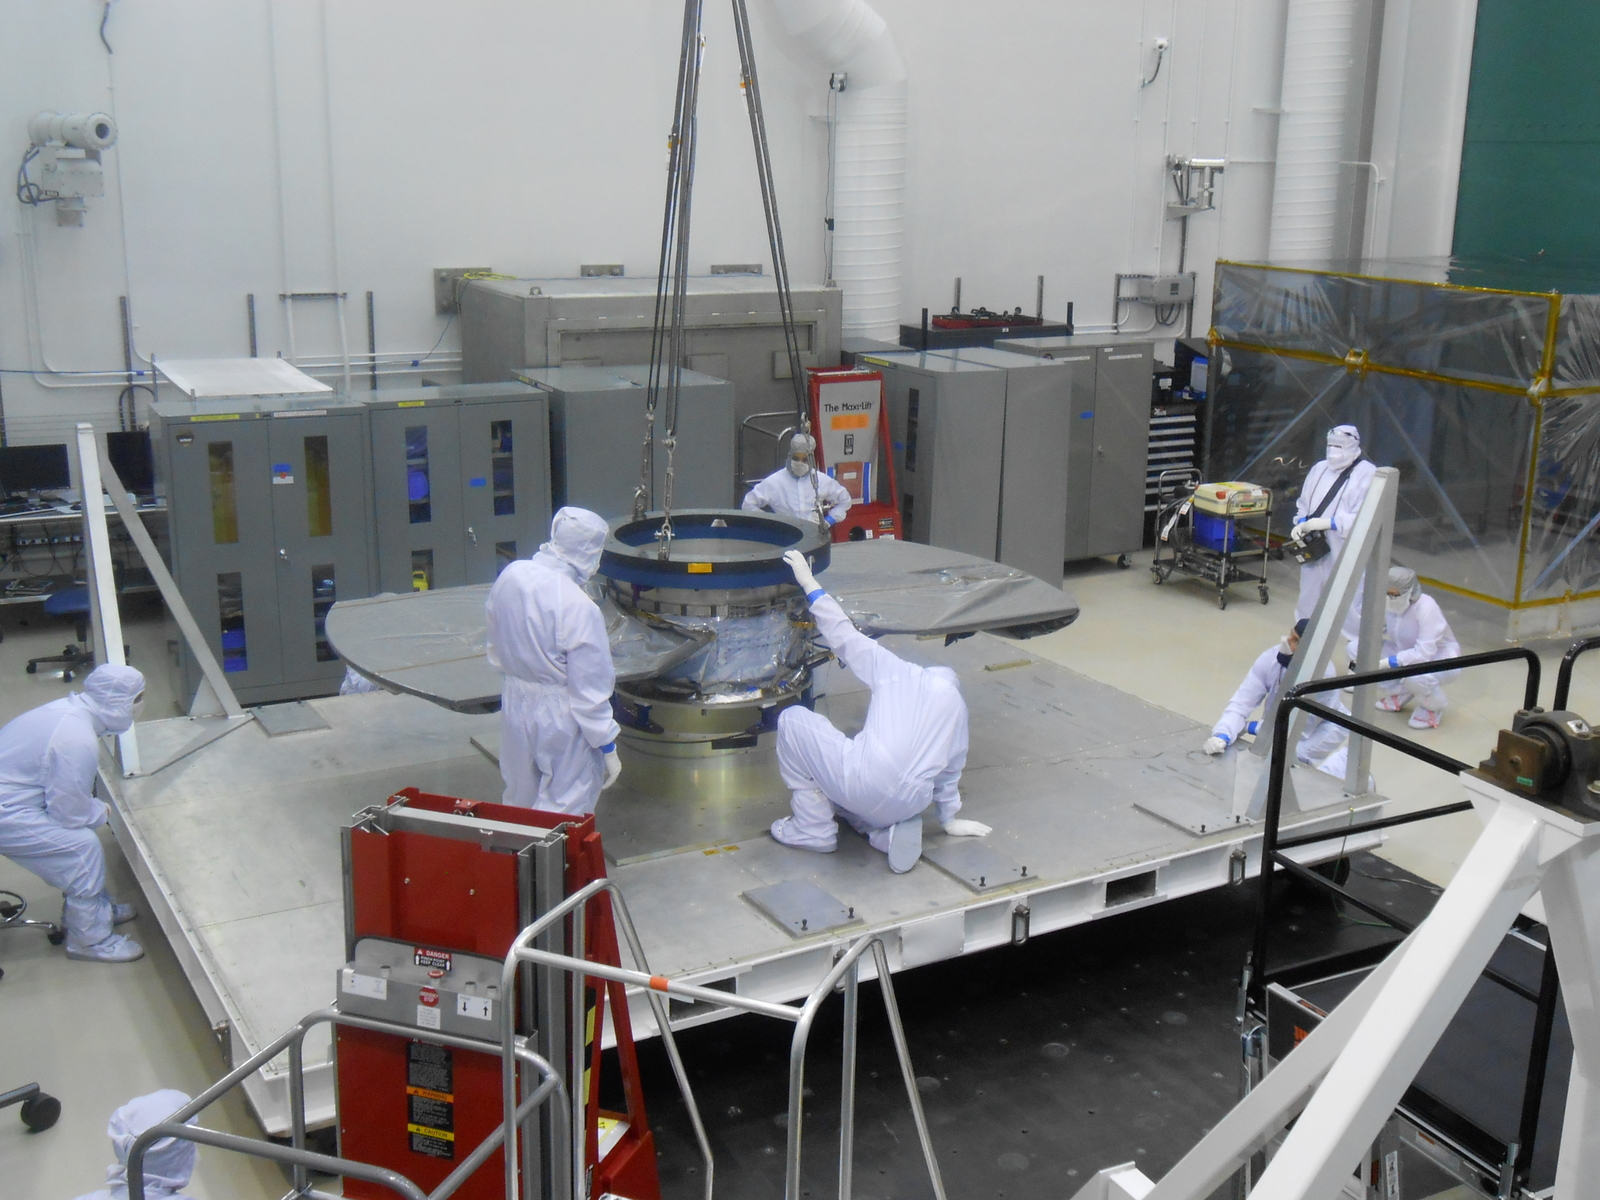 Lockheed Martin spacecraft specialists check the cruise stage of NASA's InSight spacecraft in this June 22, 2017, photo. The cruise stage will provide vital functions during the flight from Earth to Mars, and then will be jettisoned before the rest of the spacecraft enters Mars' atmosphere.